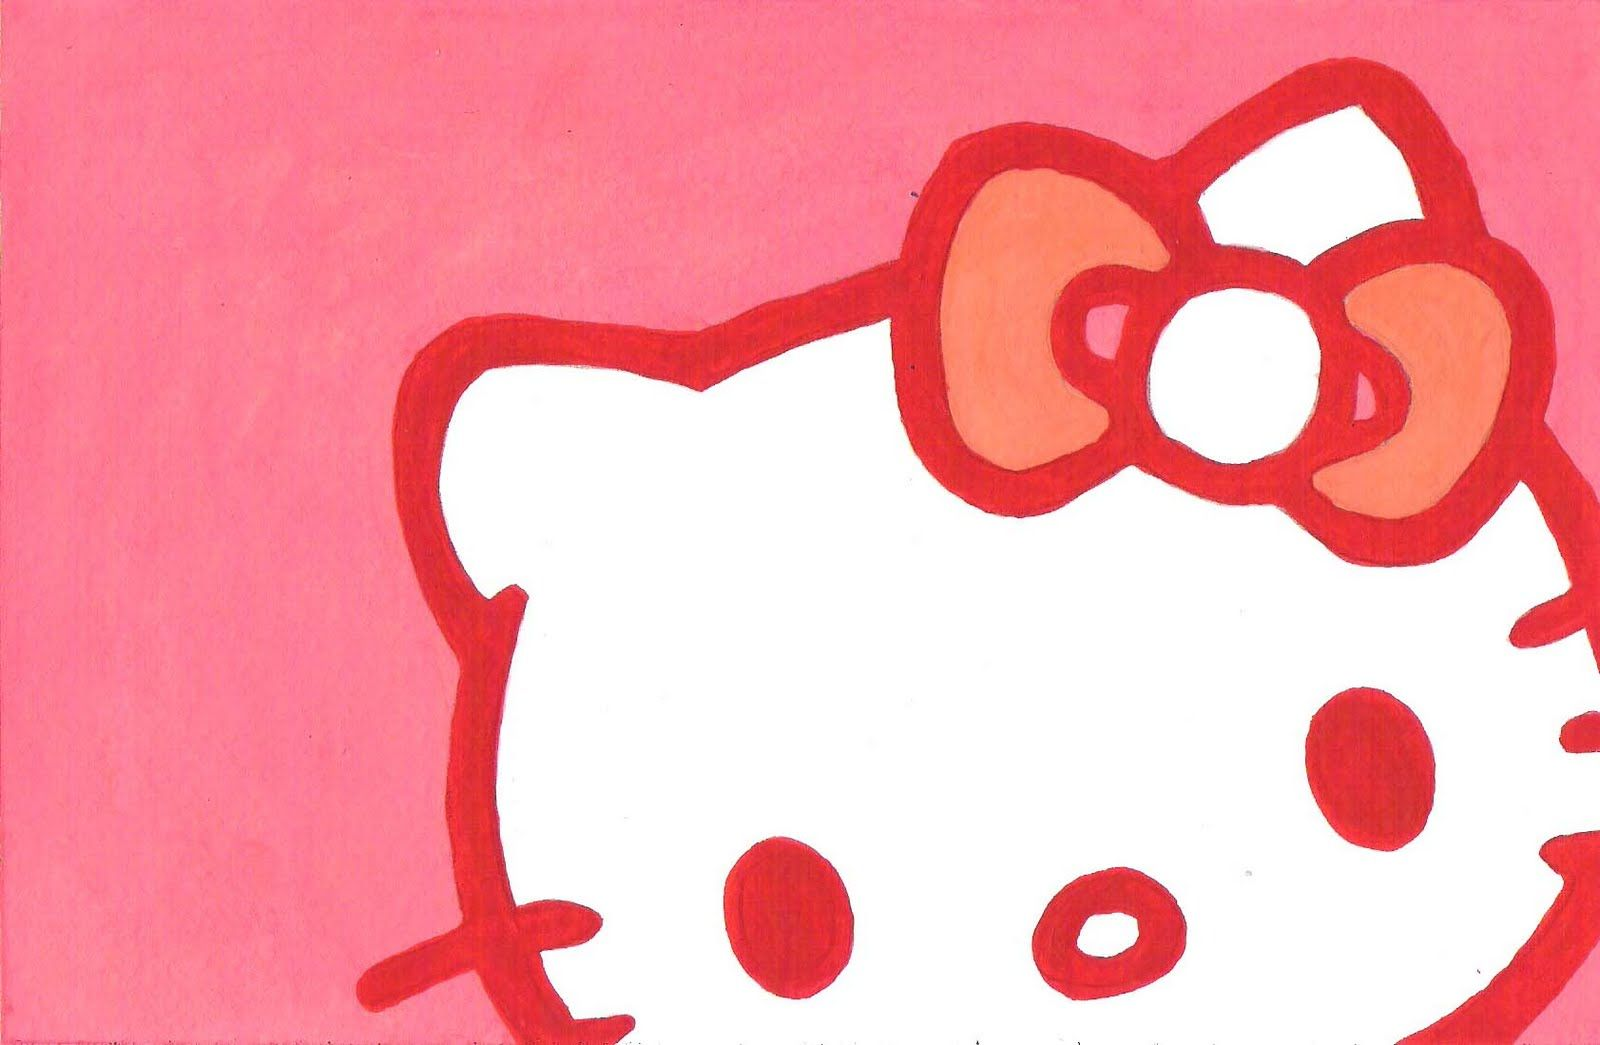 uhello kitty love forevver | trippy hello kitty forever 1600x1045 pixel 114 kb jpg